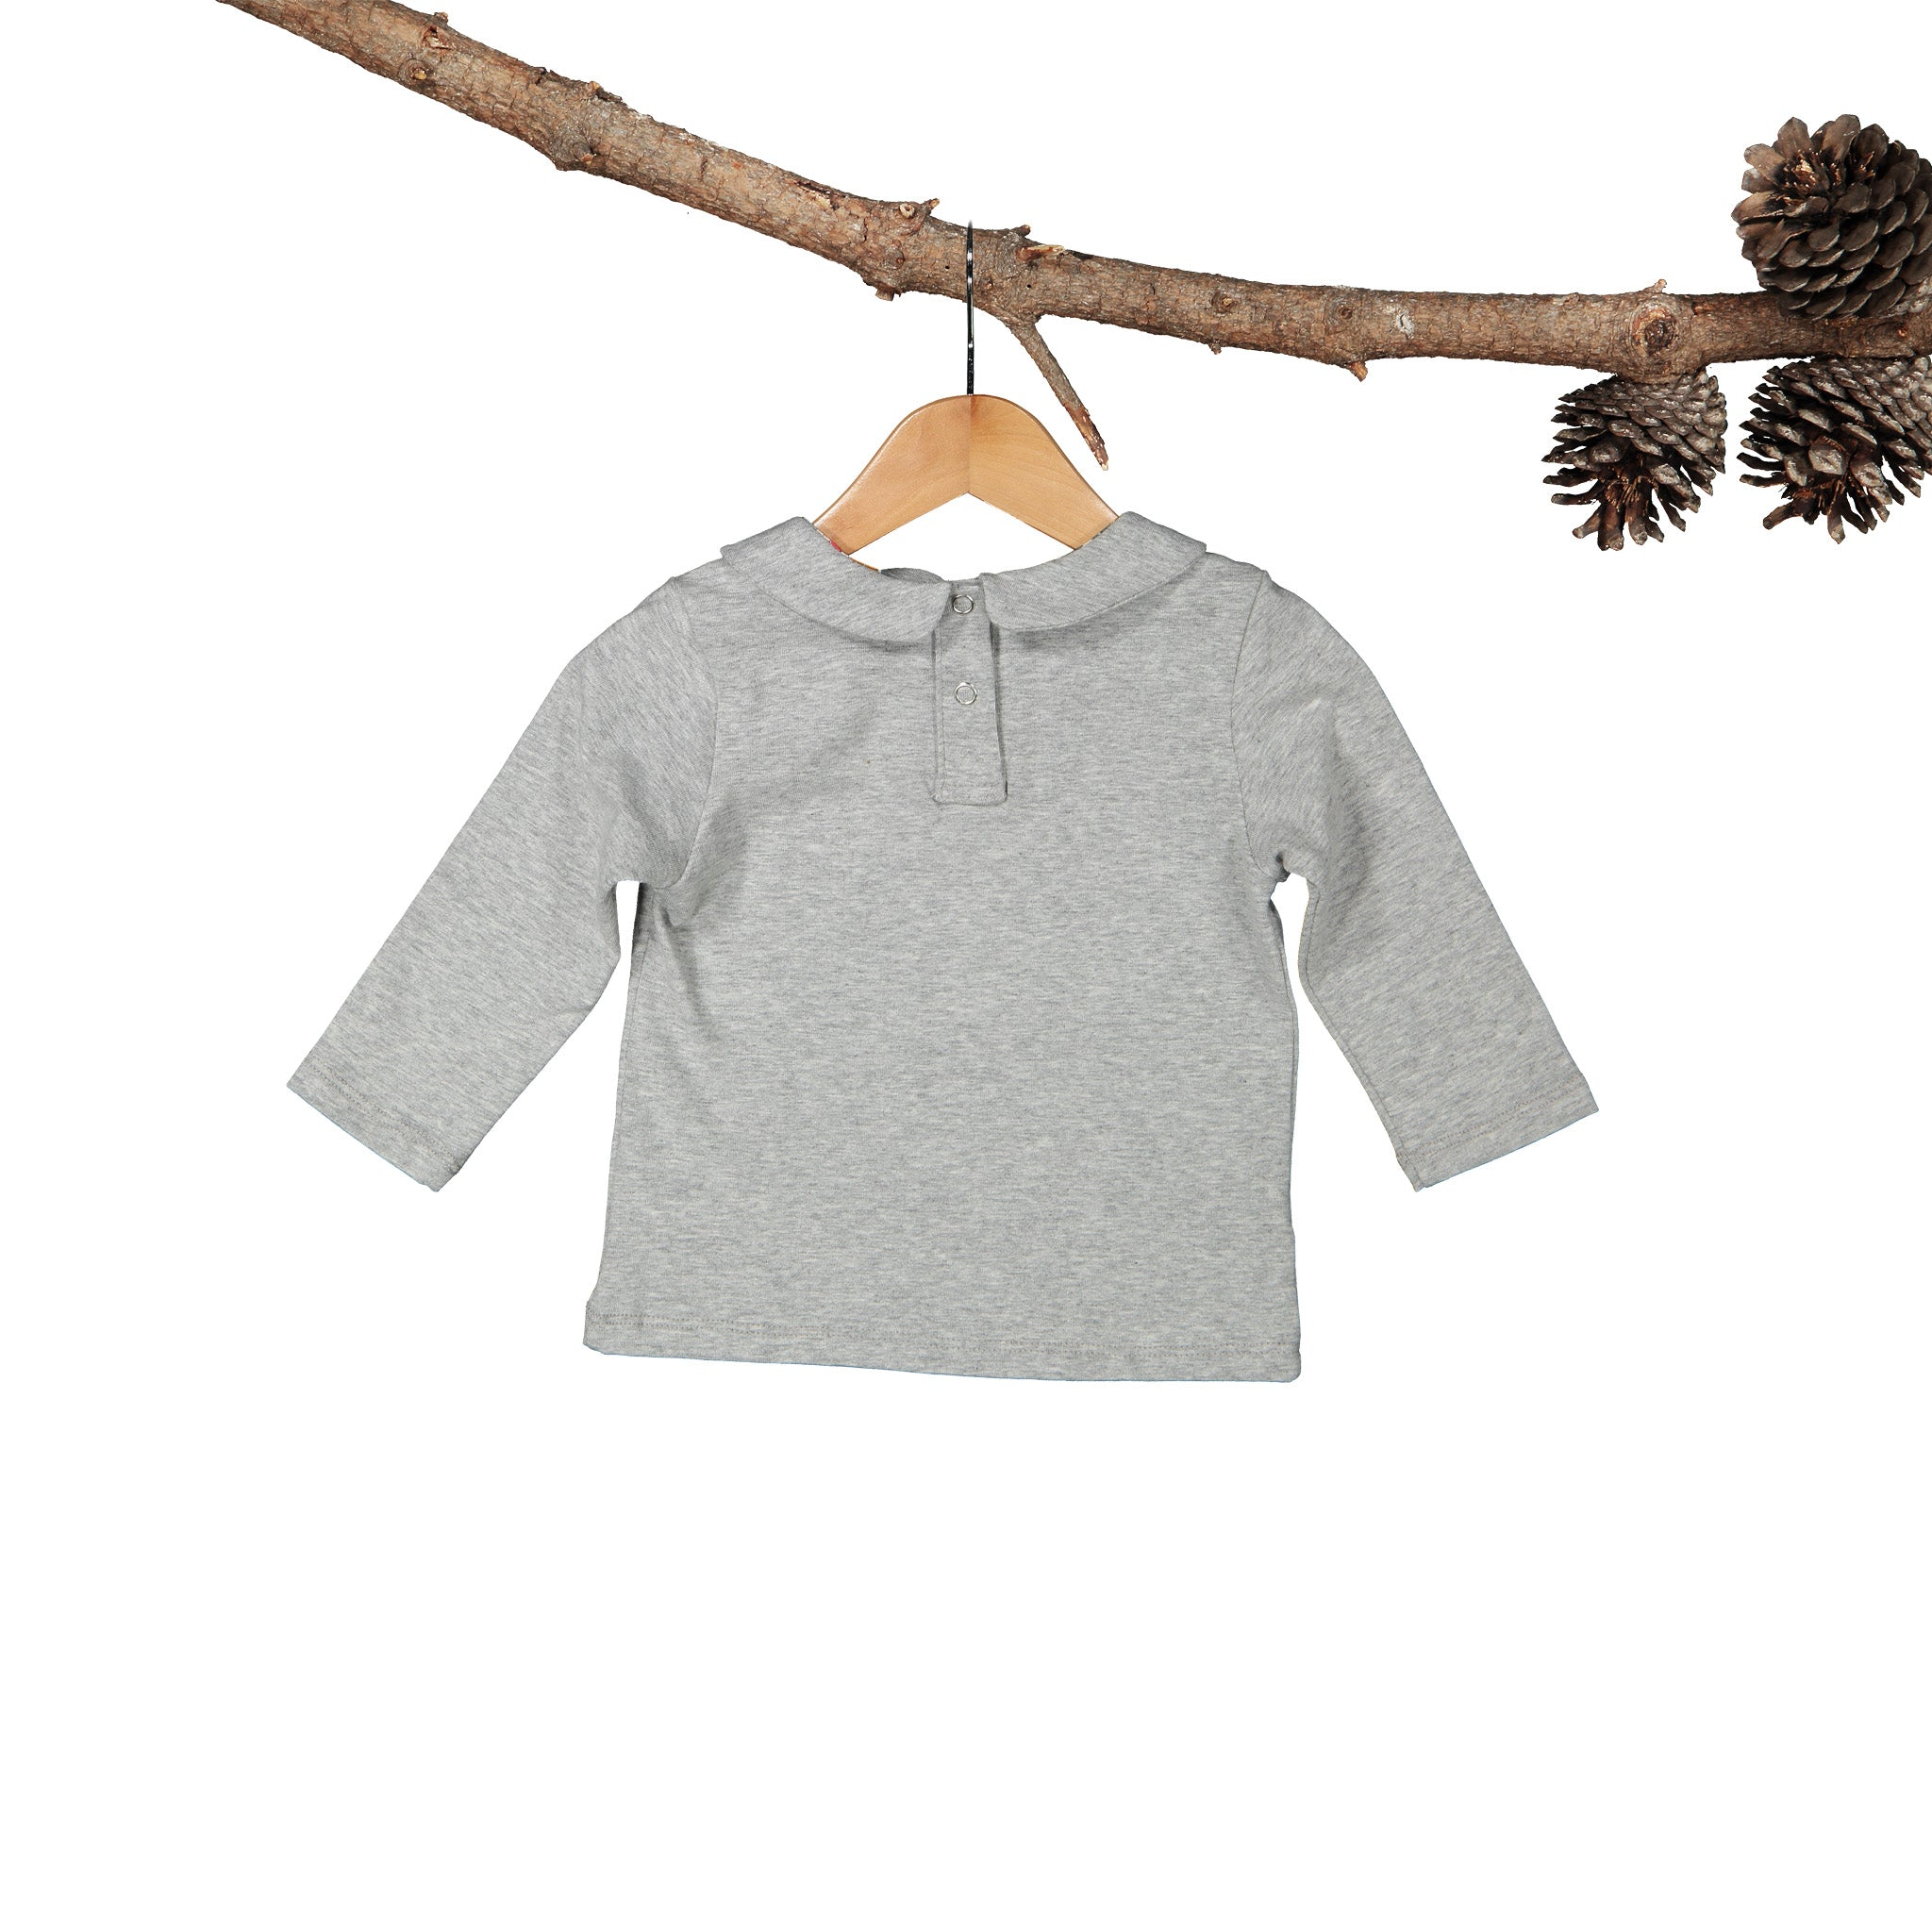 Peter Pan Collar Grey Melange Long Sleeve T-Shirt